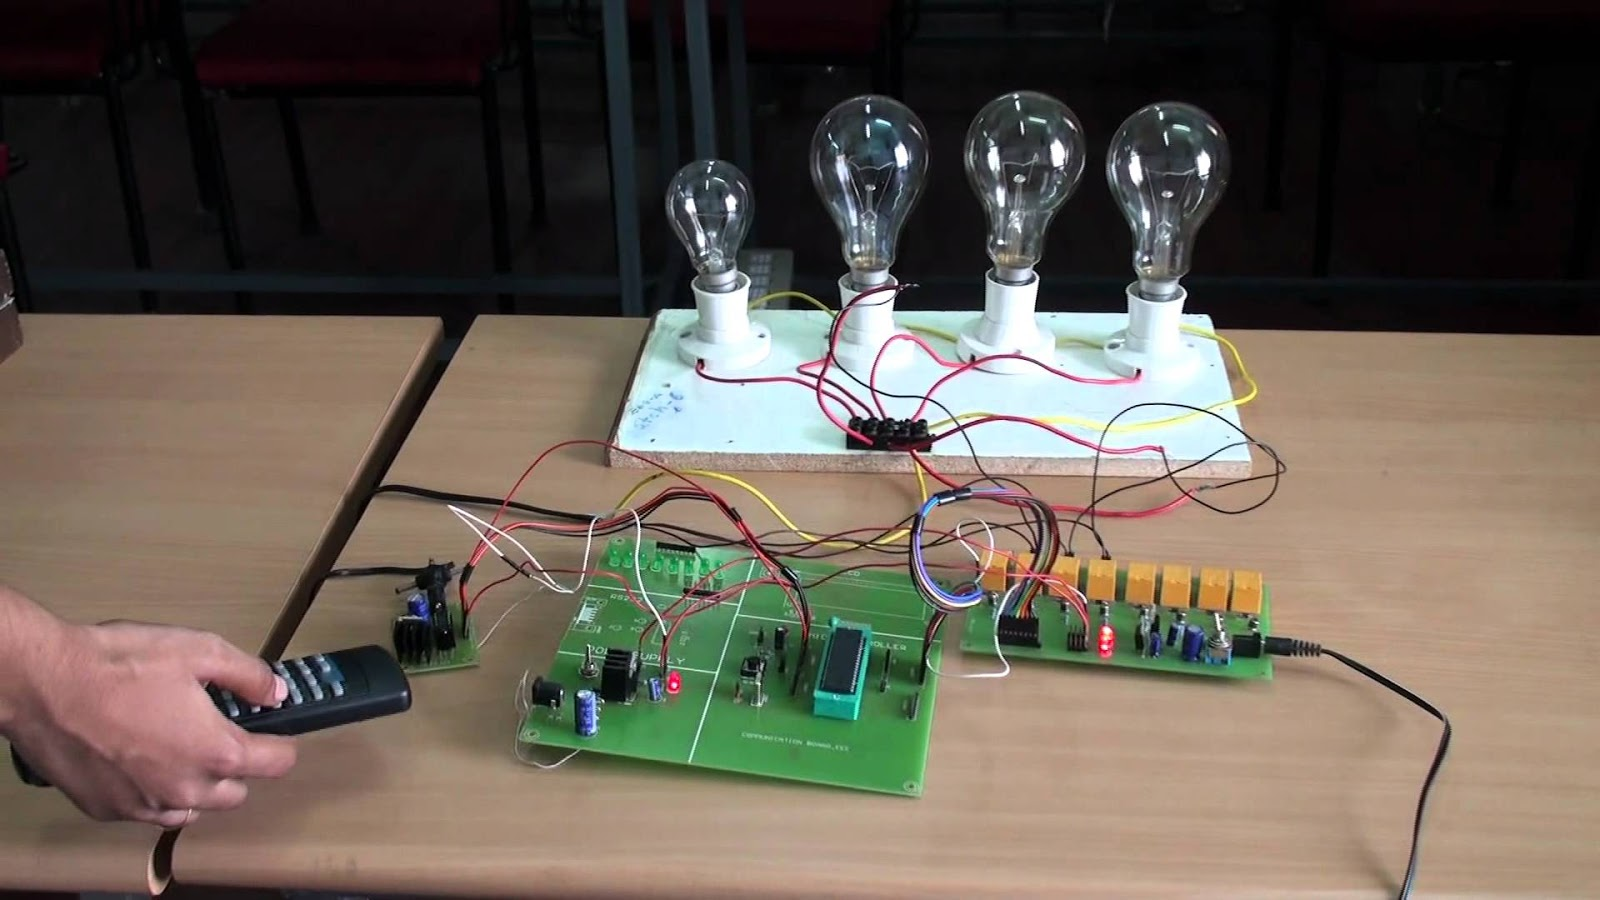 Mini Projects For You Circuit Project3v Low Battery Voltage Flasher Reaction Timer Game This Is A Simple And Funny Which Contains 10 Leds That Are Moving In An Arbitrary Fashion We Have To Target